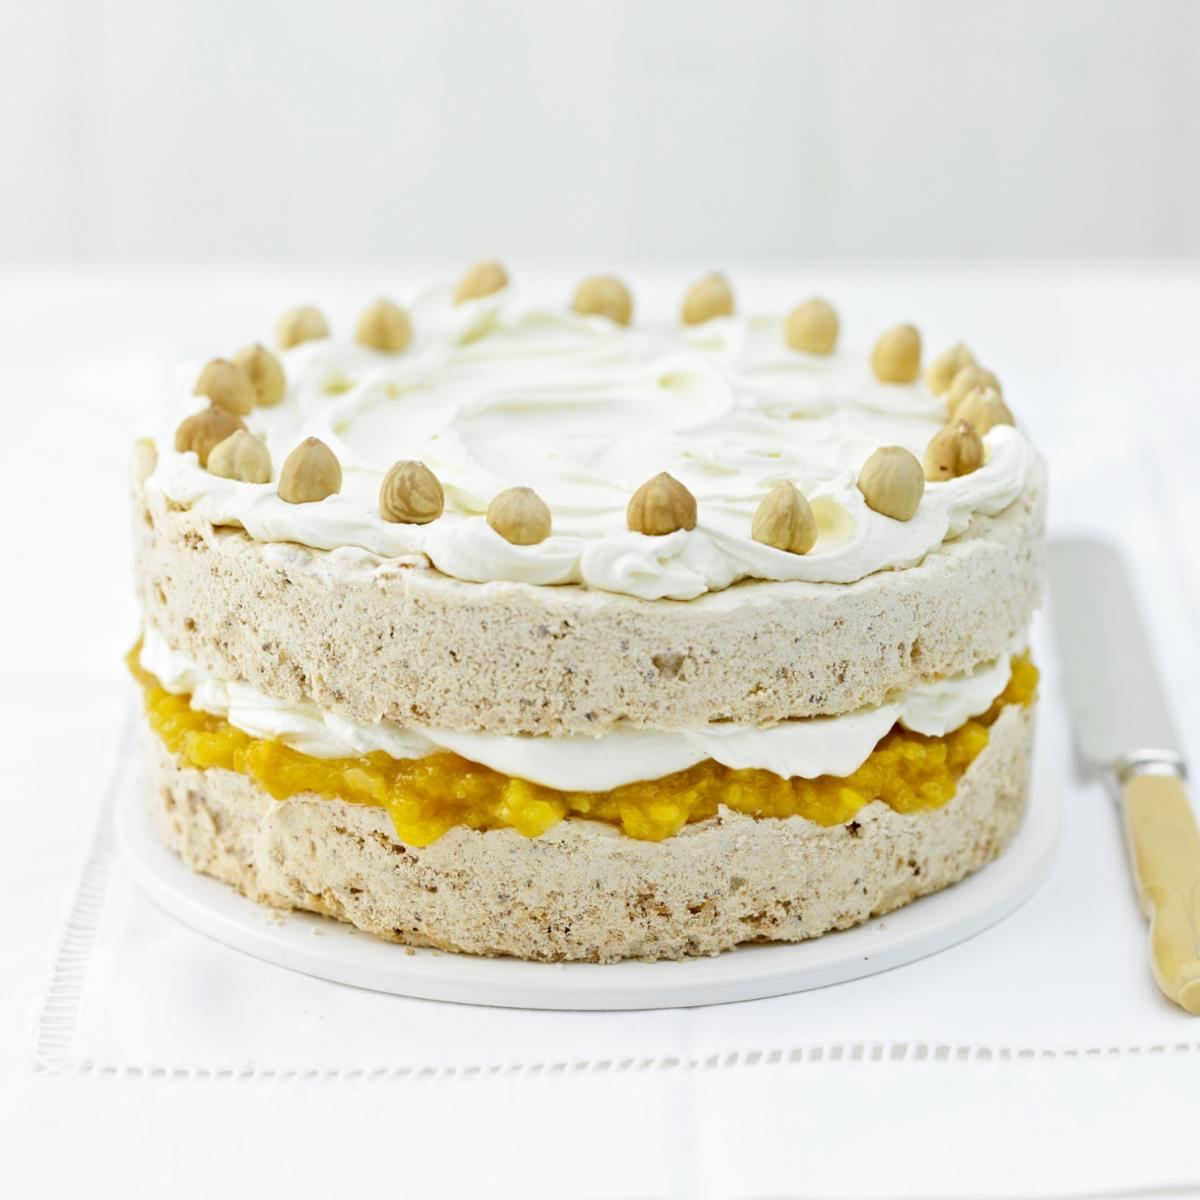 A picture of Delia's Apricot Hazelnut Meringue Cake recipe